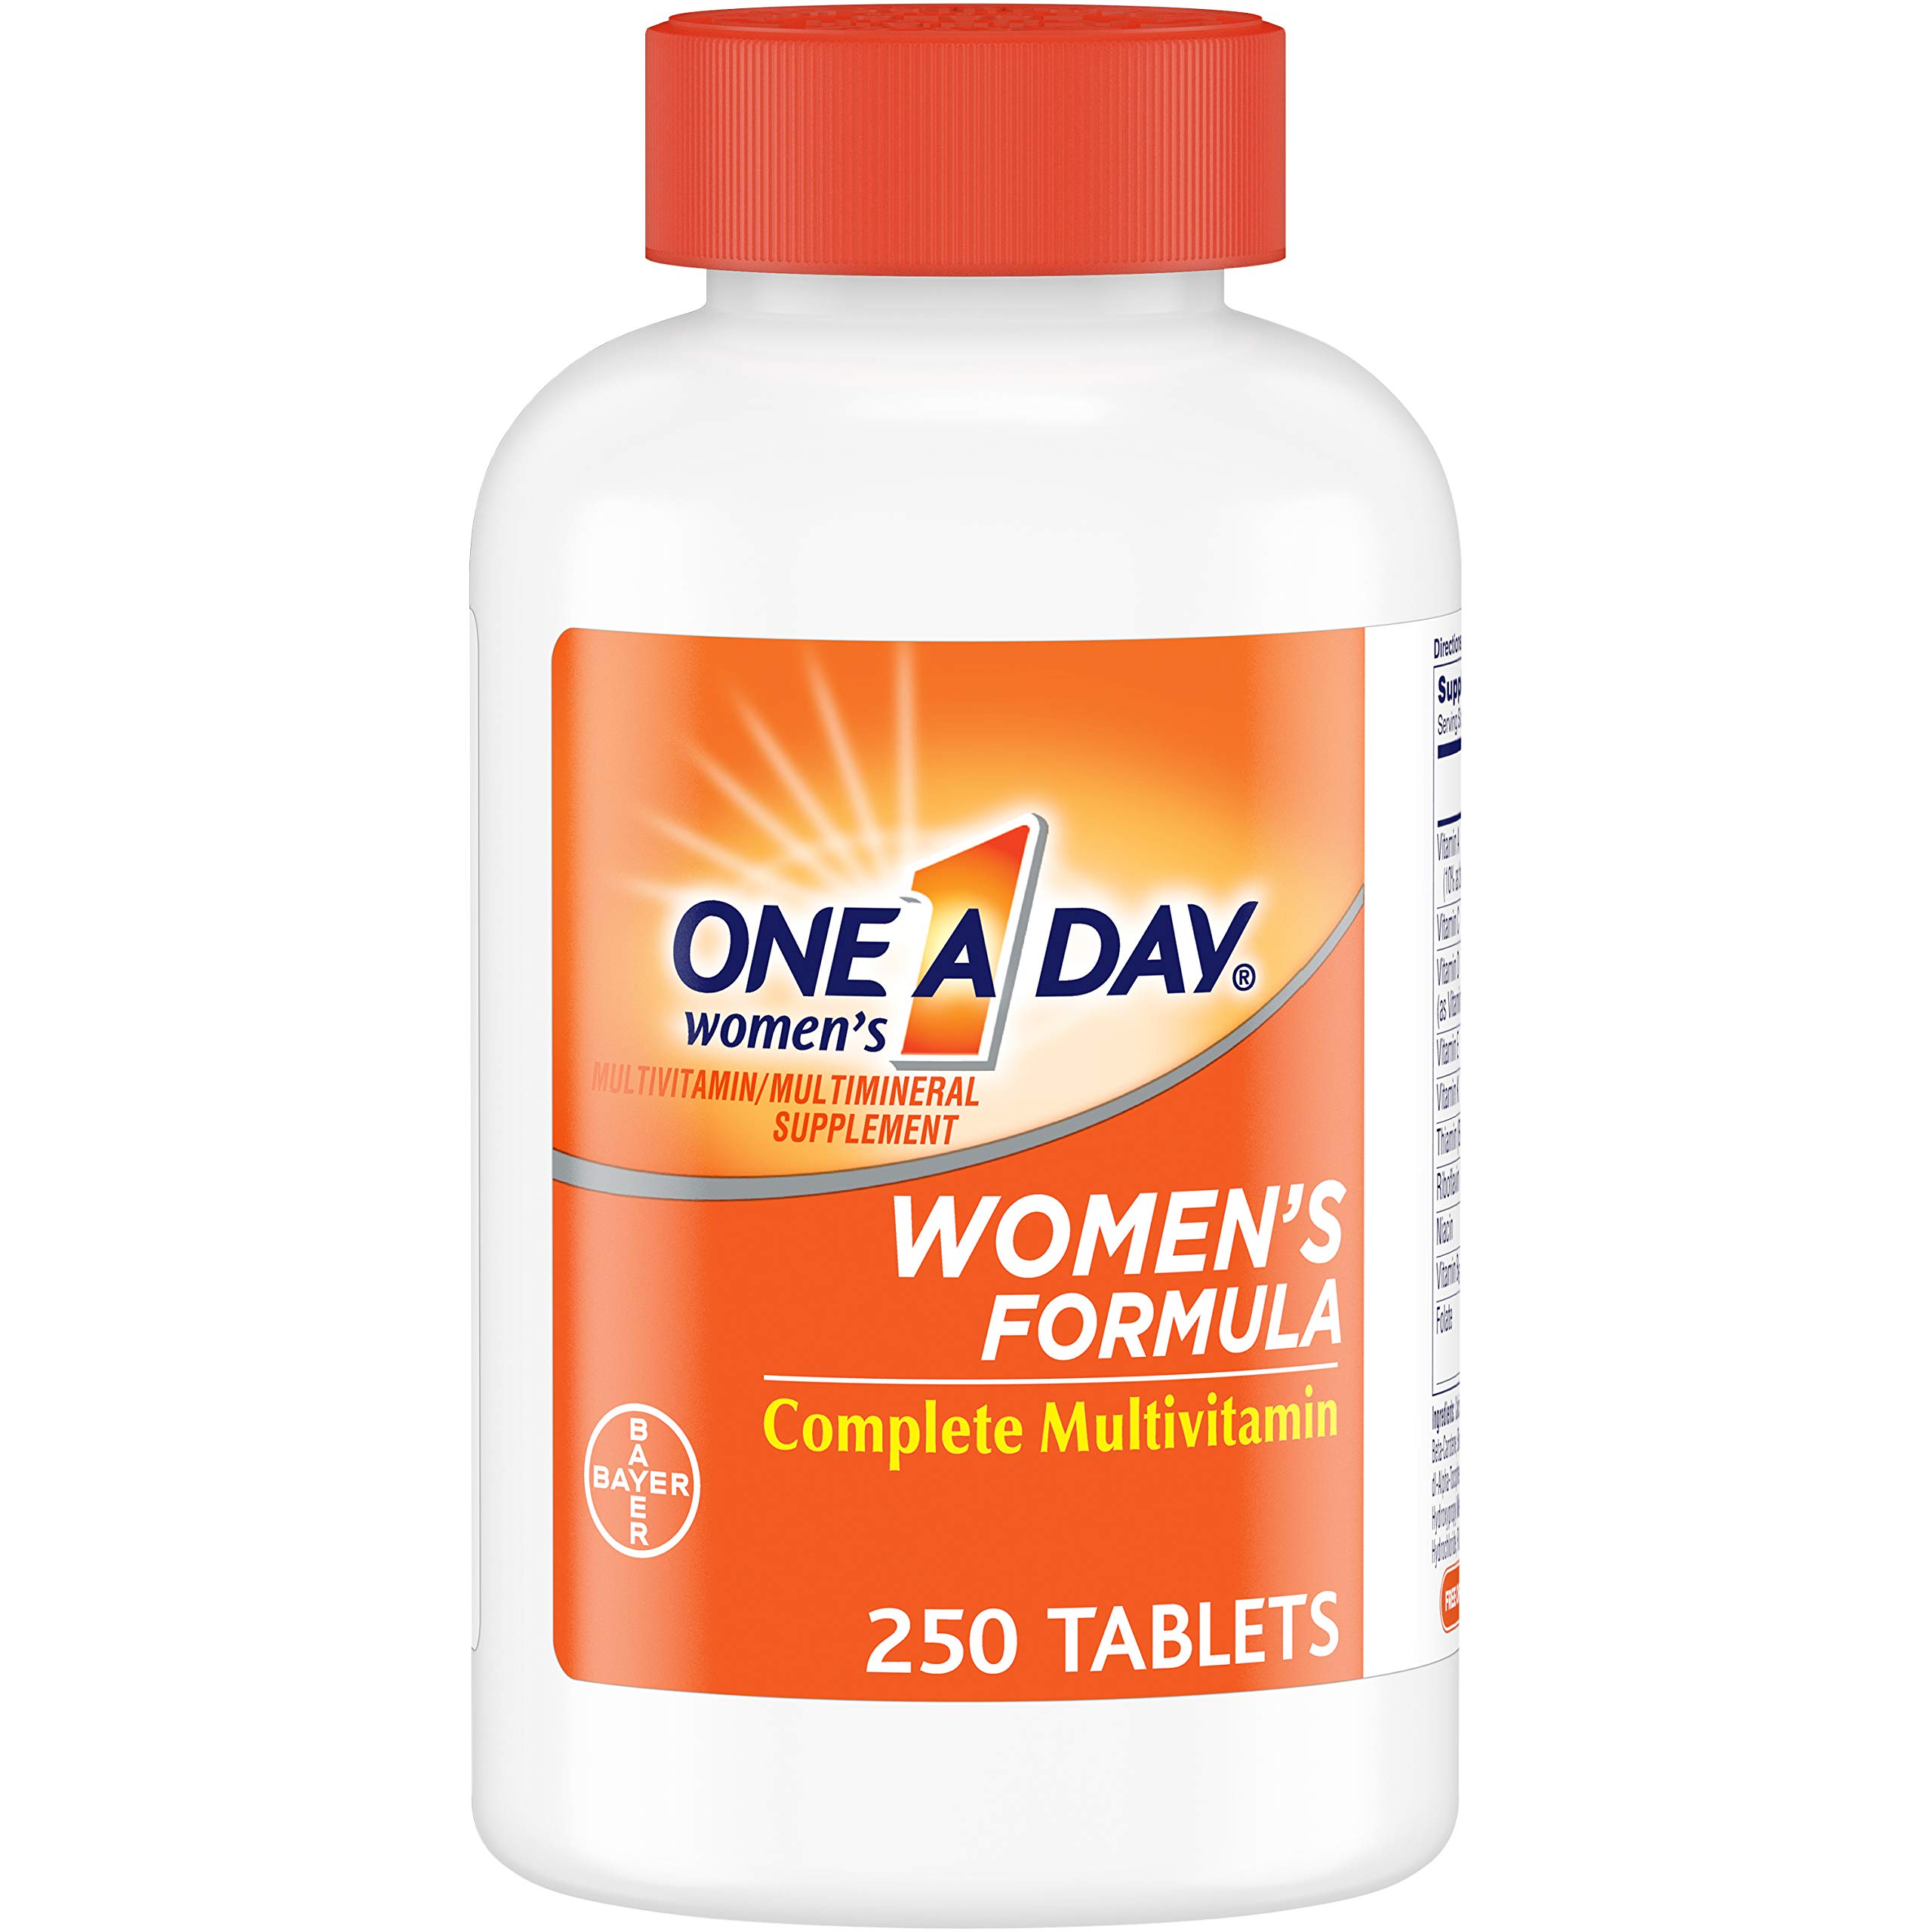 One A Day Women's Multivitamin, Supplement with Vitamins A, C, E, B1, B2, B6, B12, Biotin, Calcium and Vitamin D, 250 Count by ONE A DAY